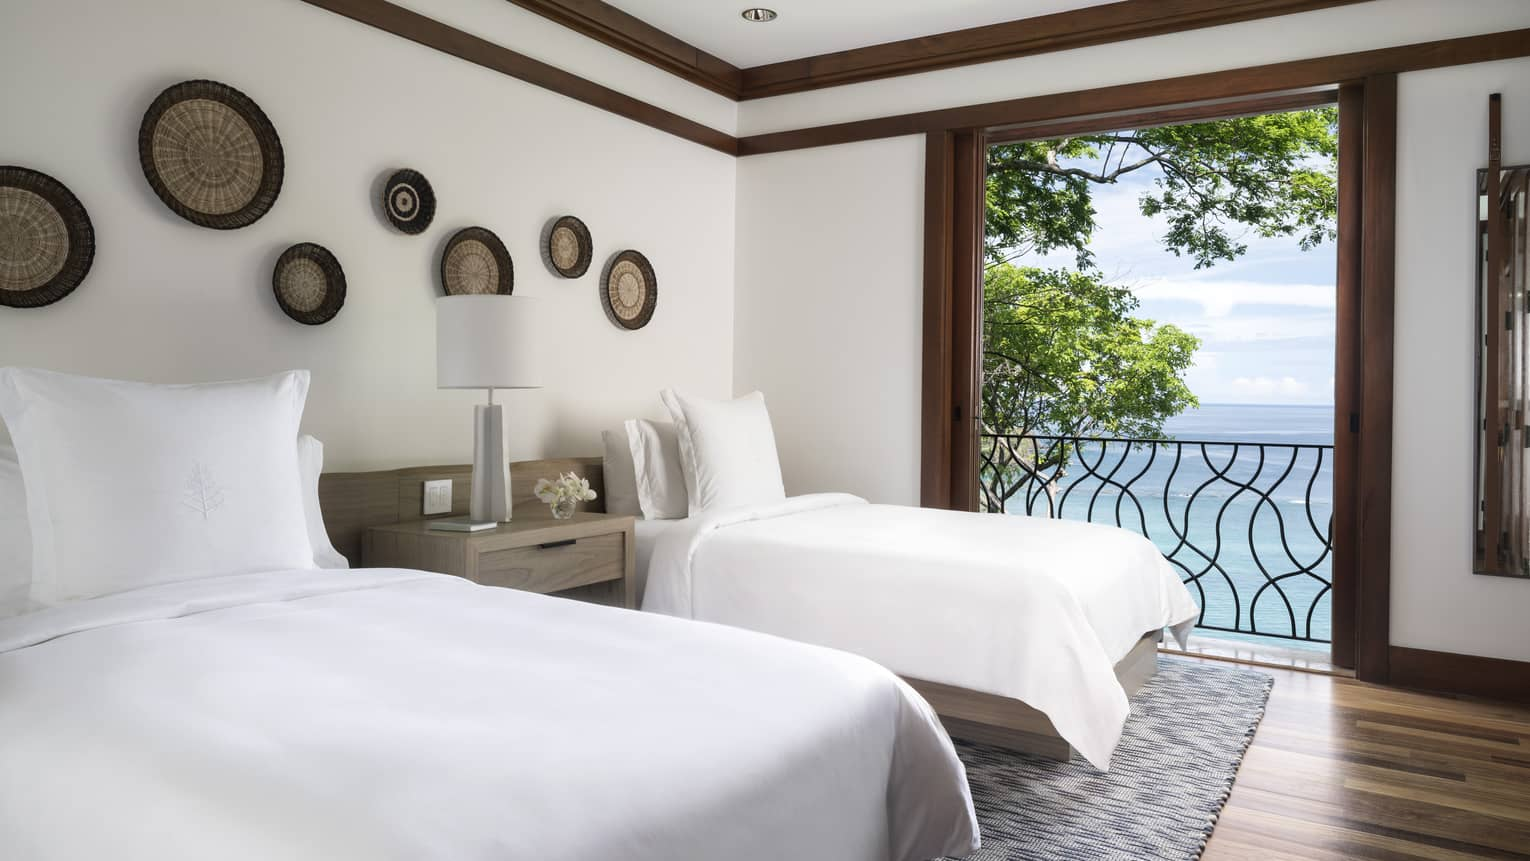 Twin beds with white linens beside open door to iron terrace, ocean views